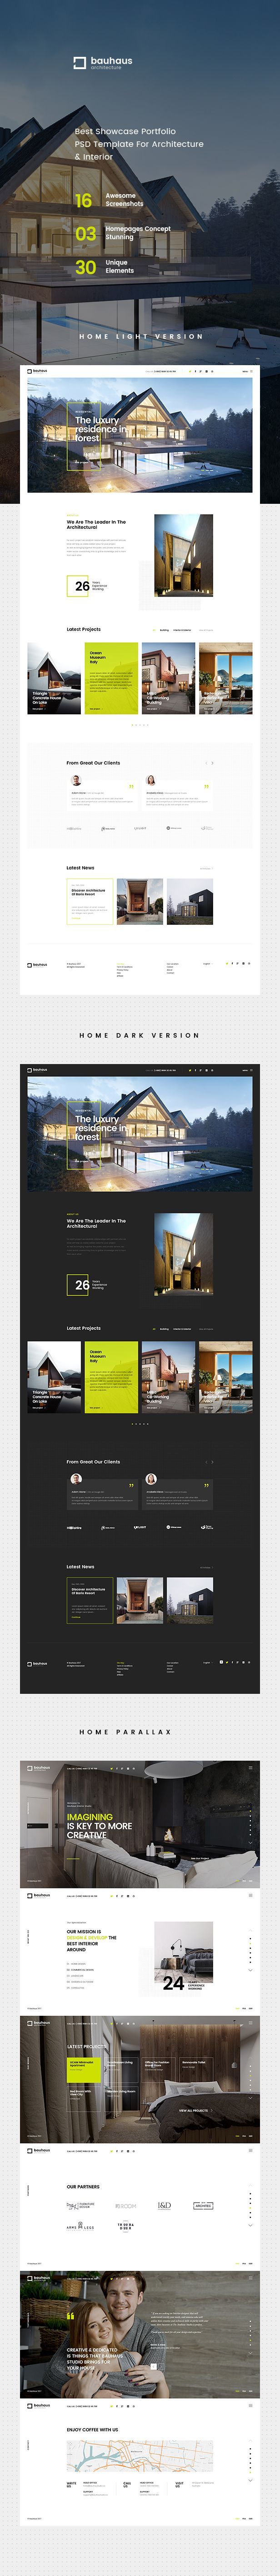 Bauhaus is evaluated an unique & trendy PSD template for architecture & interior company with clean and modern design. With design minimal and focus on show projects, Bauhaus will make your work lo...